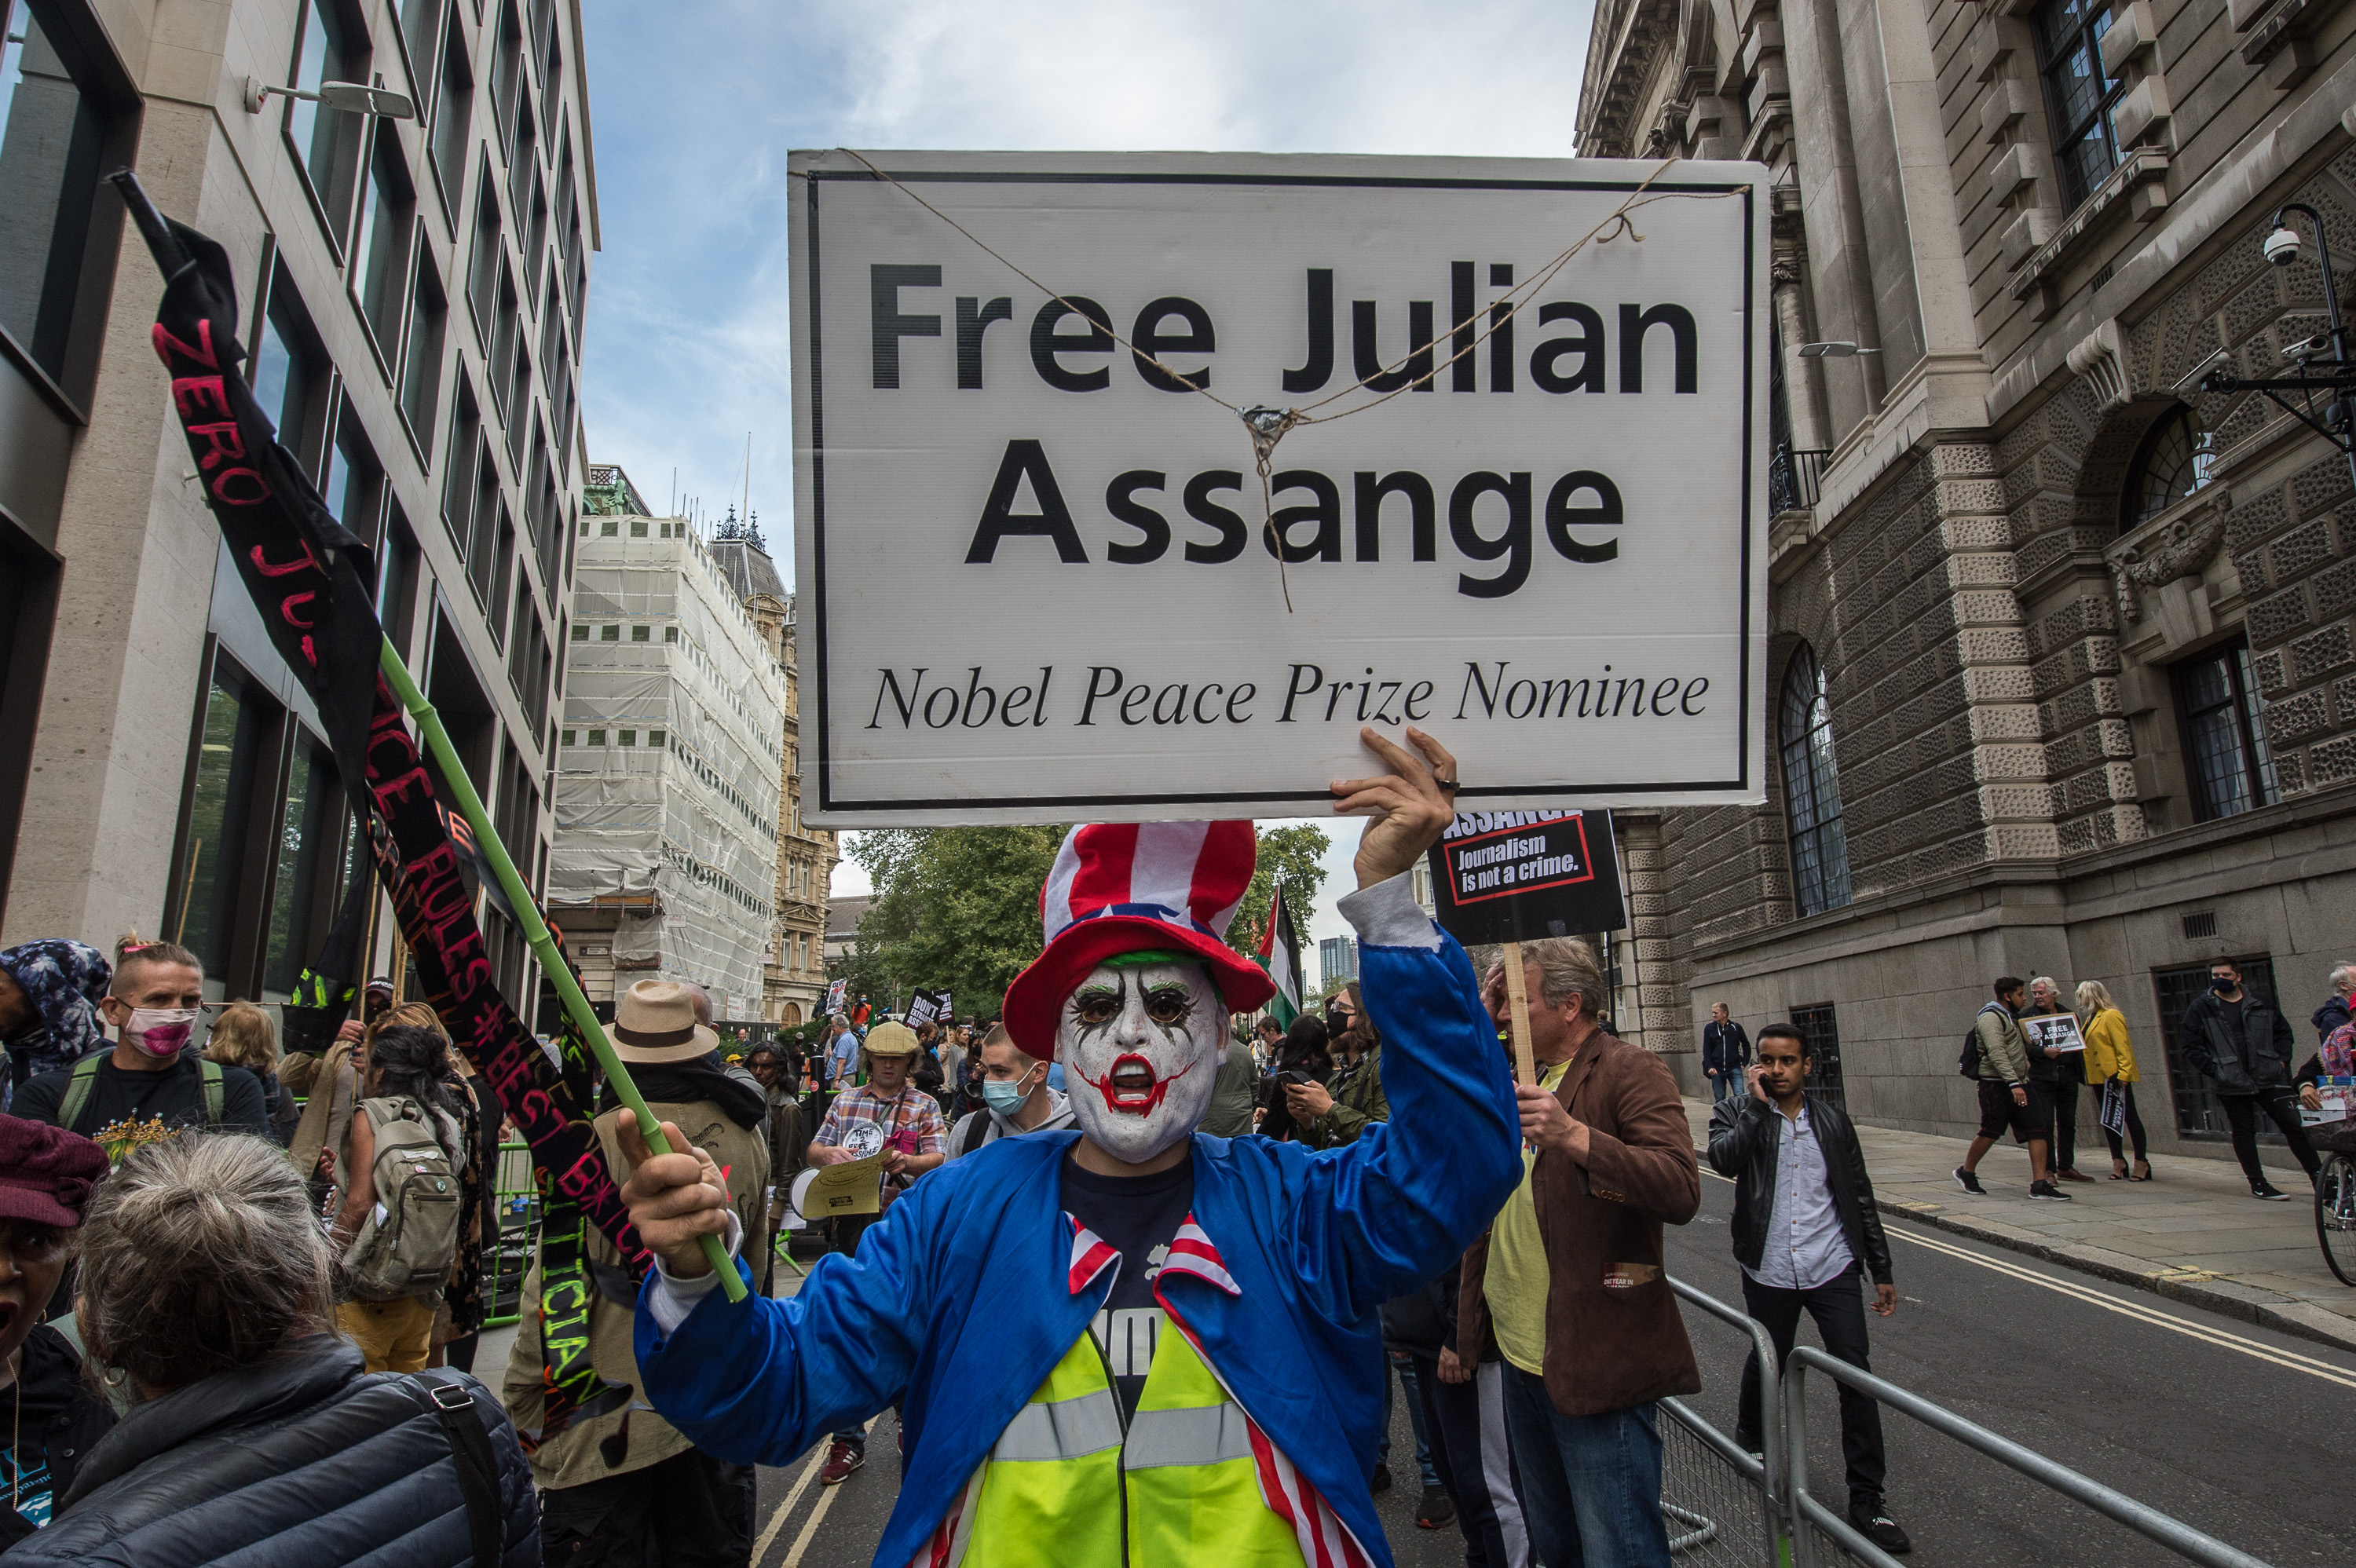 Assange Court Report September 10: Morning